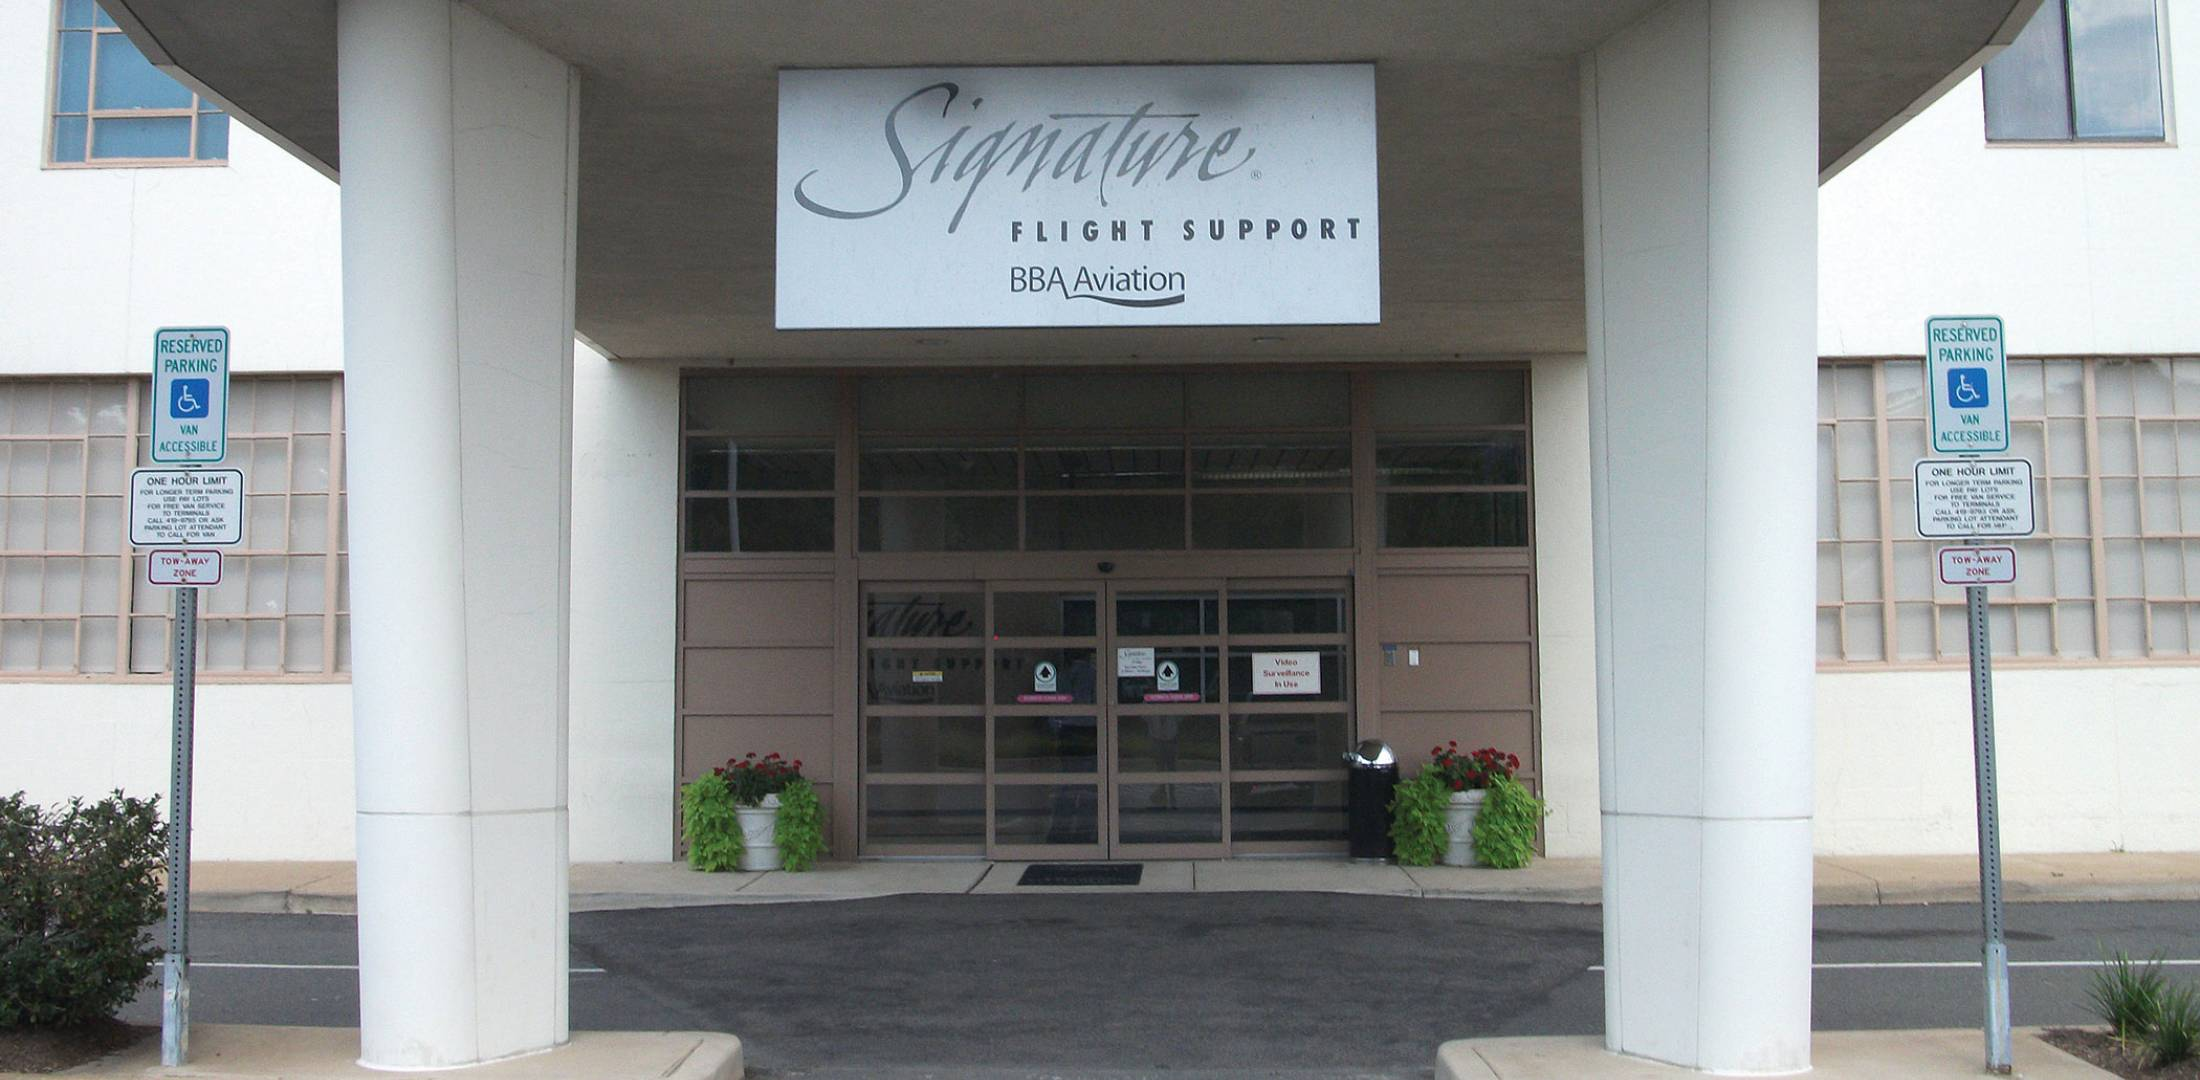 Once the flagship location for Signature's massive FBO network, Reagan Washington National Airport  is still a vital link in the chain. Though pre-9/11 numbers are unlikely to ever return, relaxation of some key restrictions could boost traffic at the site just across the Potomac from the nation's capital.